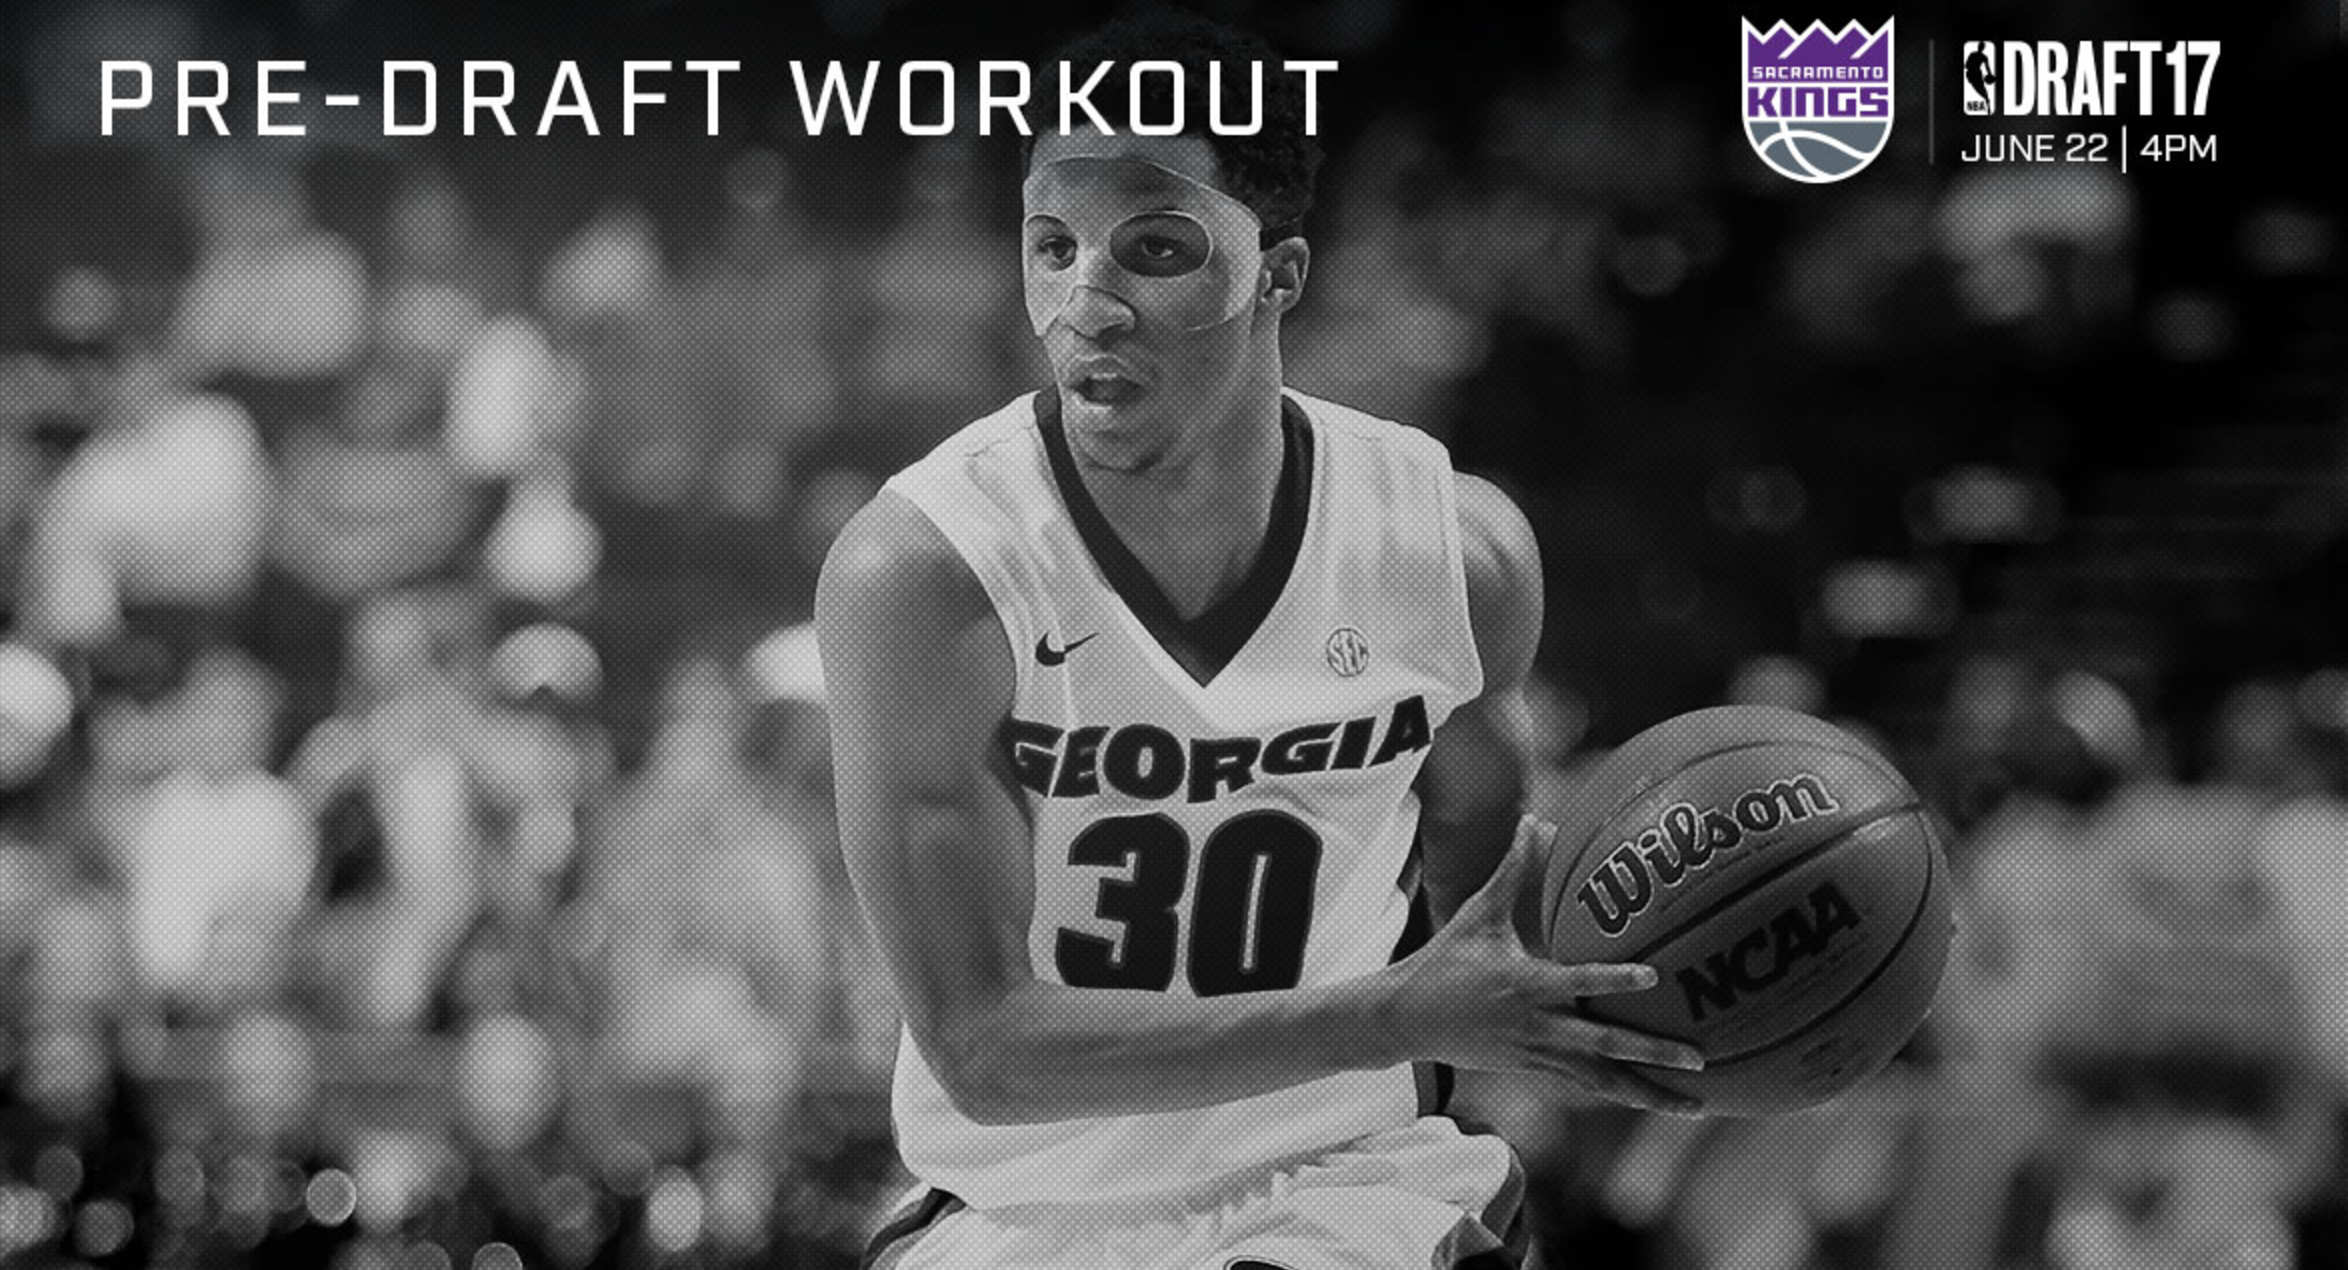 Prospects Announced for Second Pre-Draft Workout